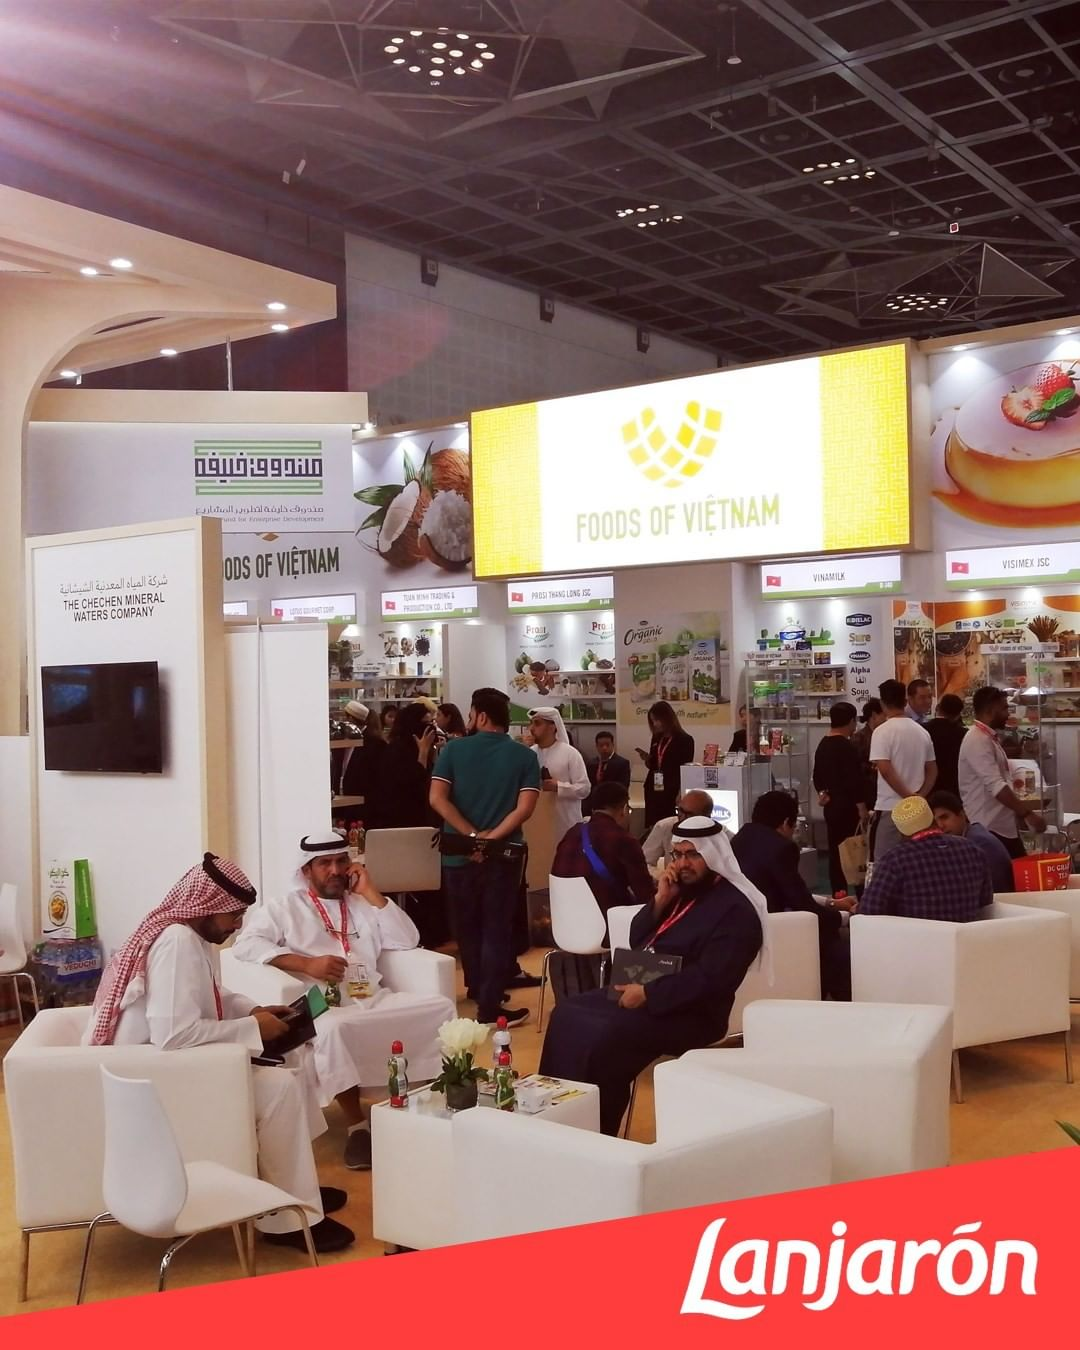 It's been a great week at the biggest annual food exhibition in the world @gulfood